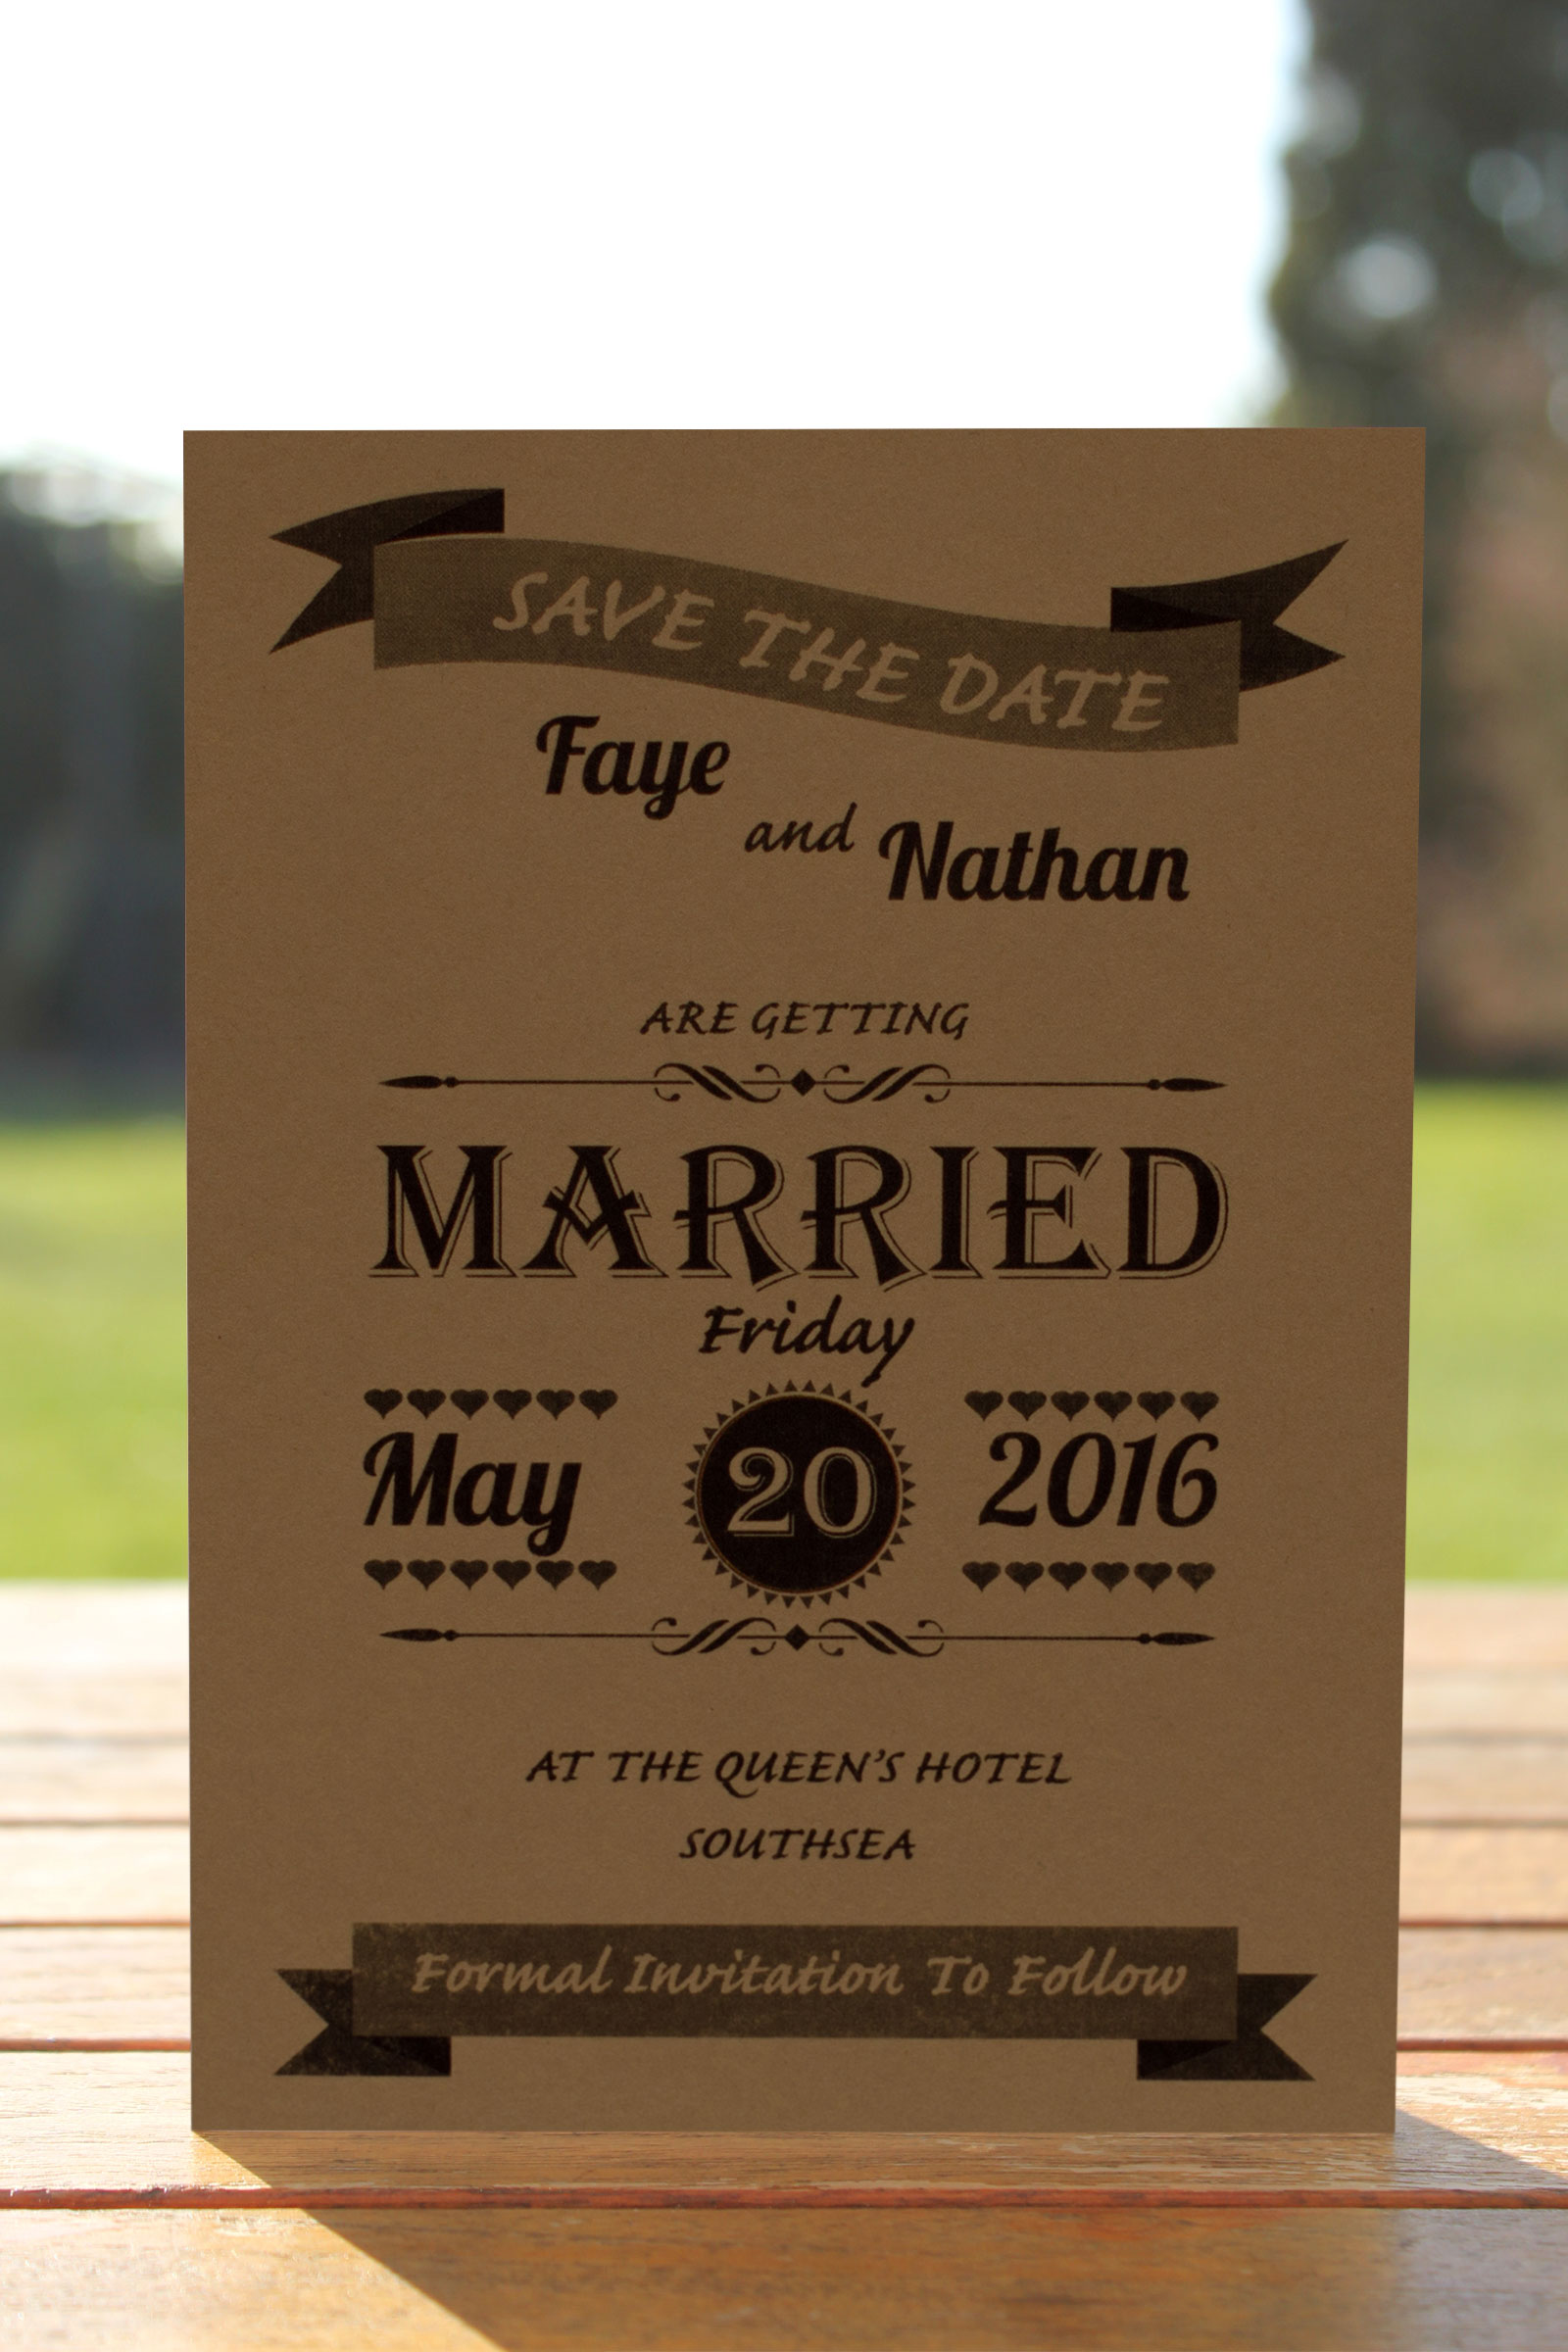 Wedding Fete on Buff Card - Save the Date Card